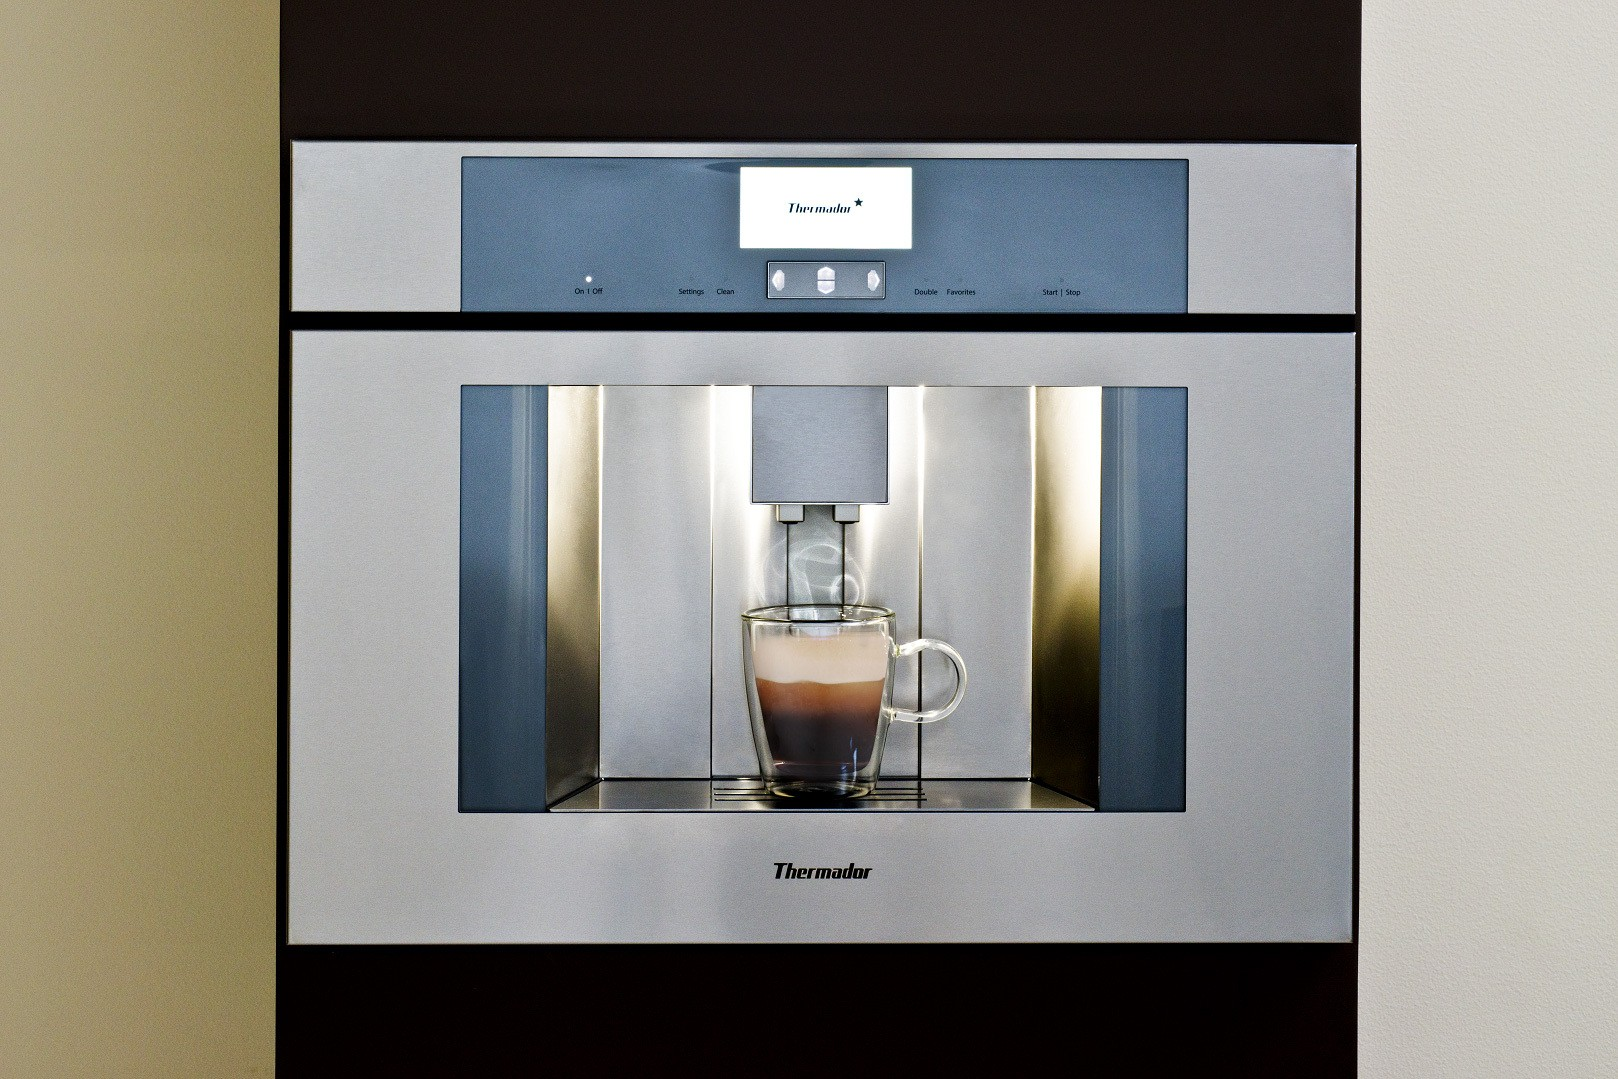 a youtube plumbing coffee world macchiato machine perfect caffe miele maker time watch plumbed class every